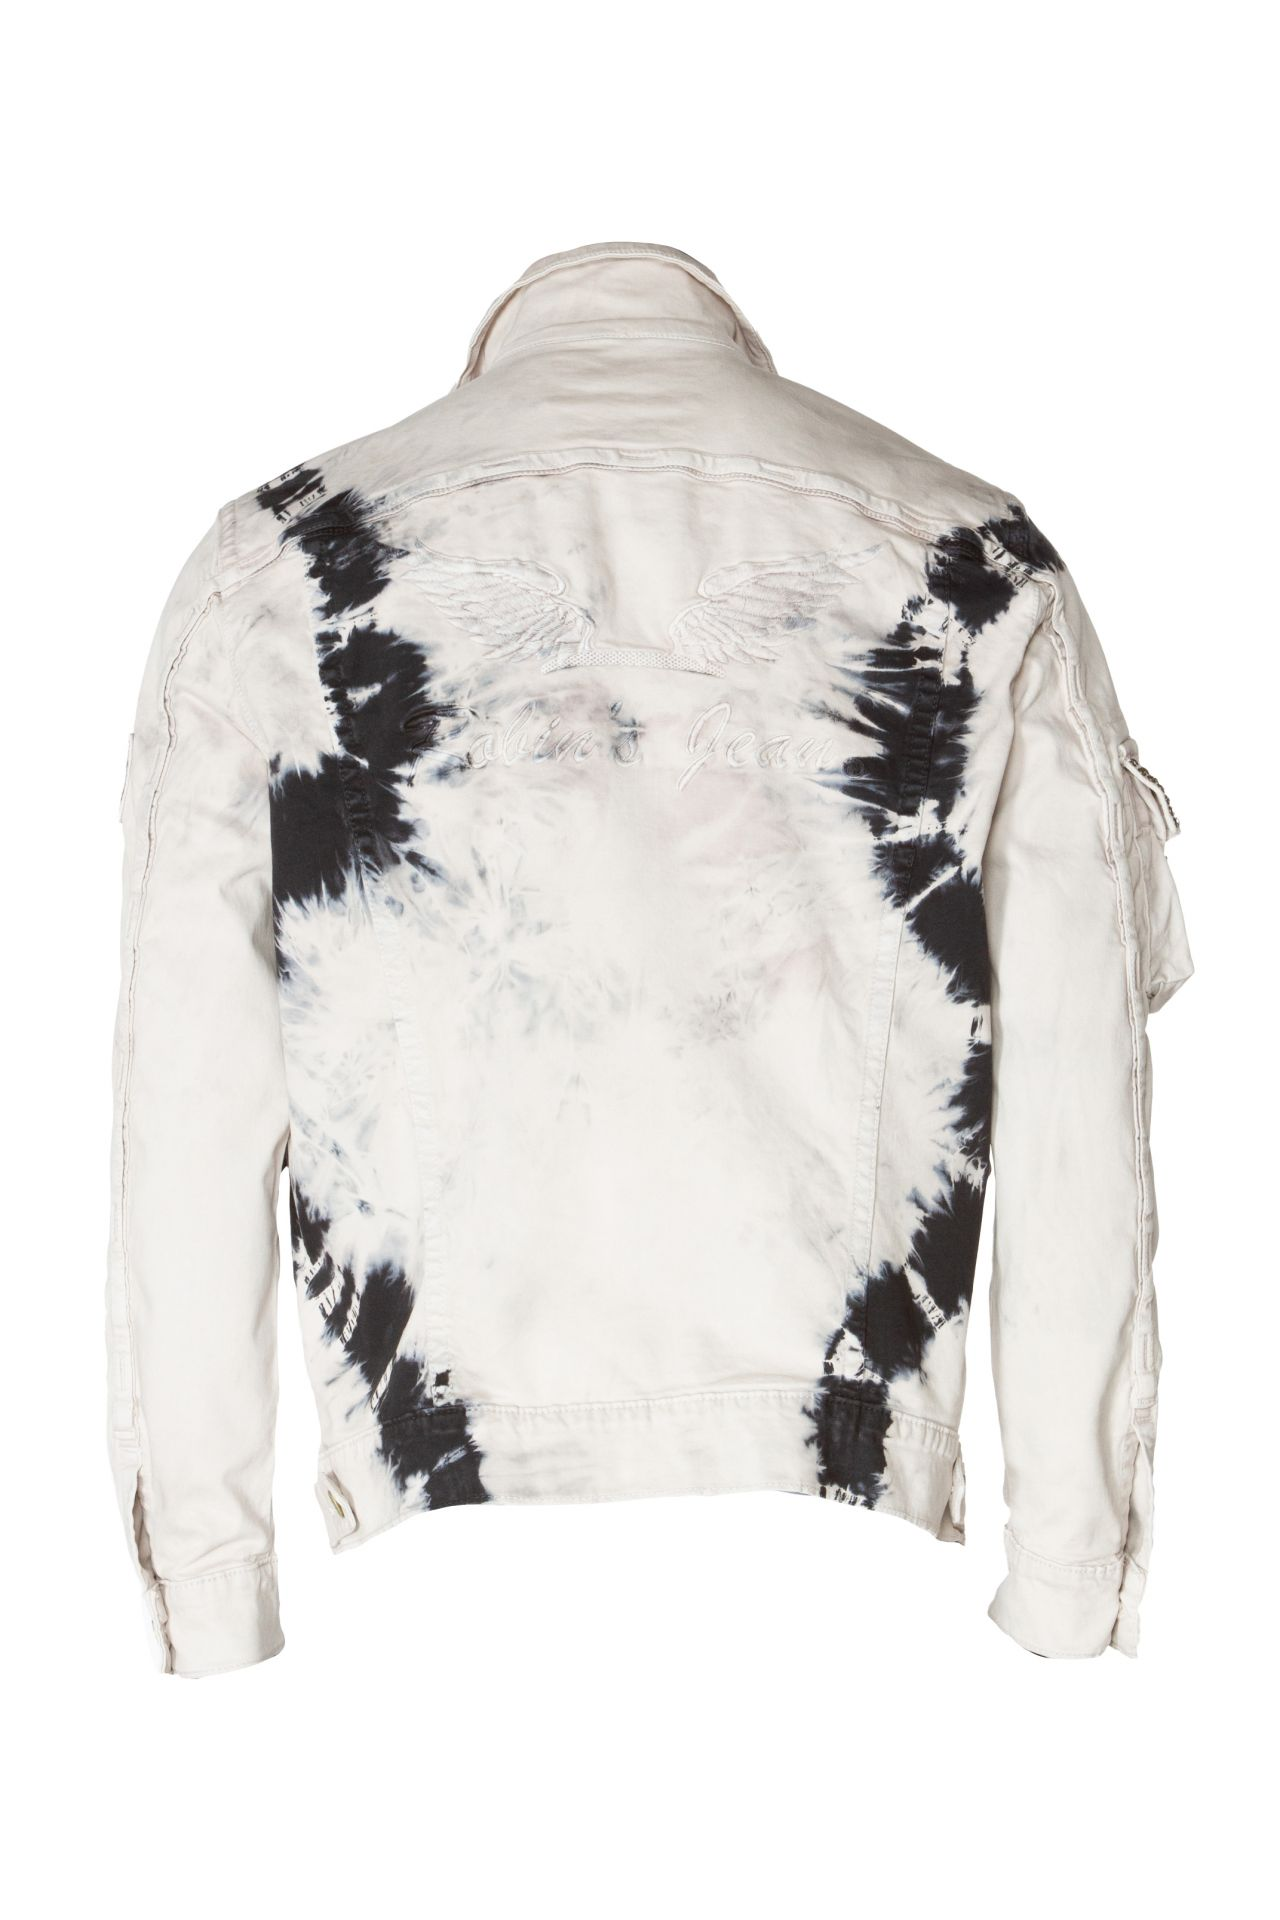 TIE DYE MILITARY JACKET WITH CRYSTALS